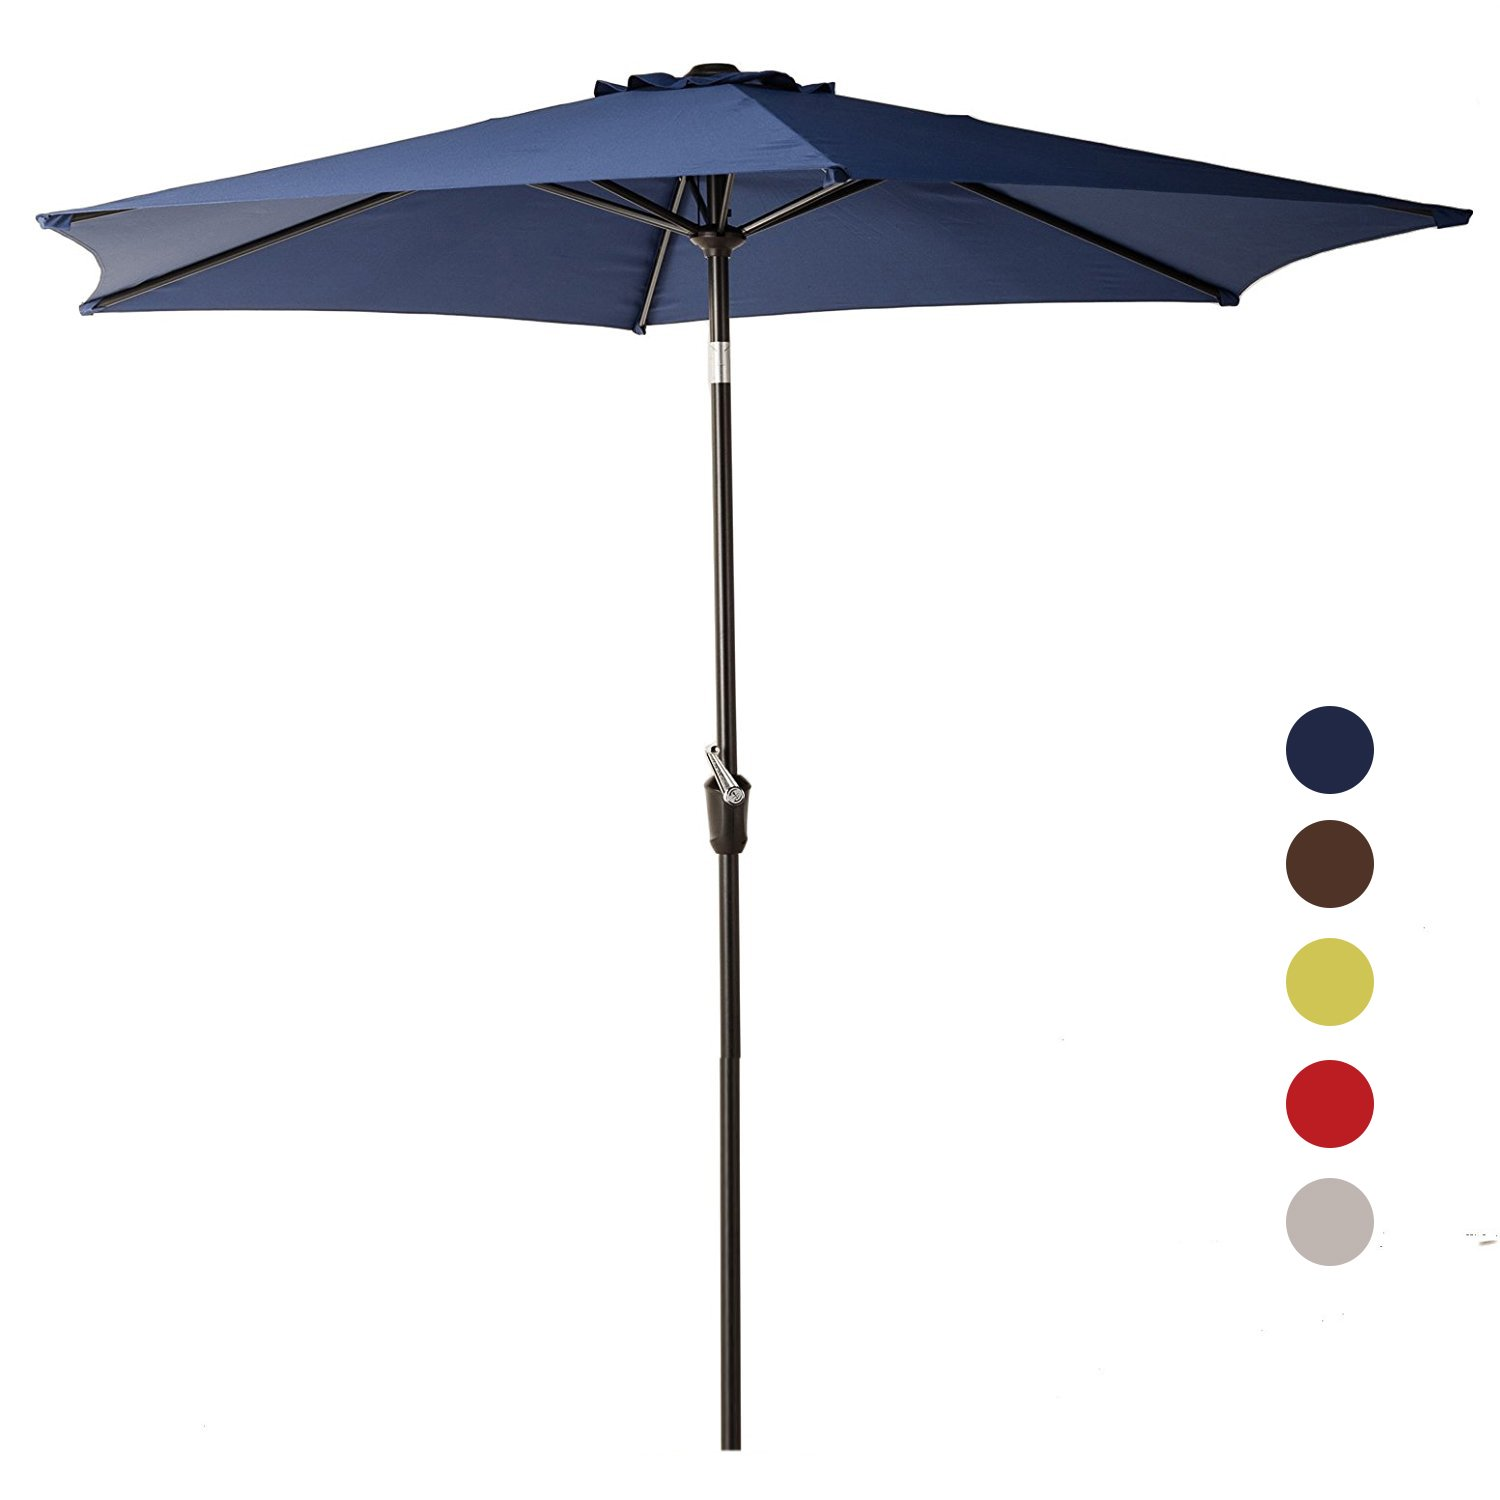 Grand patio 9FT Aluminum Patio Umbrella, UV Protective Beach Umbrella with Easy Crank and W/O Tilt, Powder Coated Outdoor Umbrella, Blue